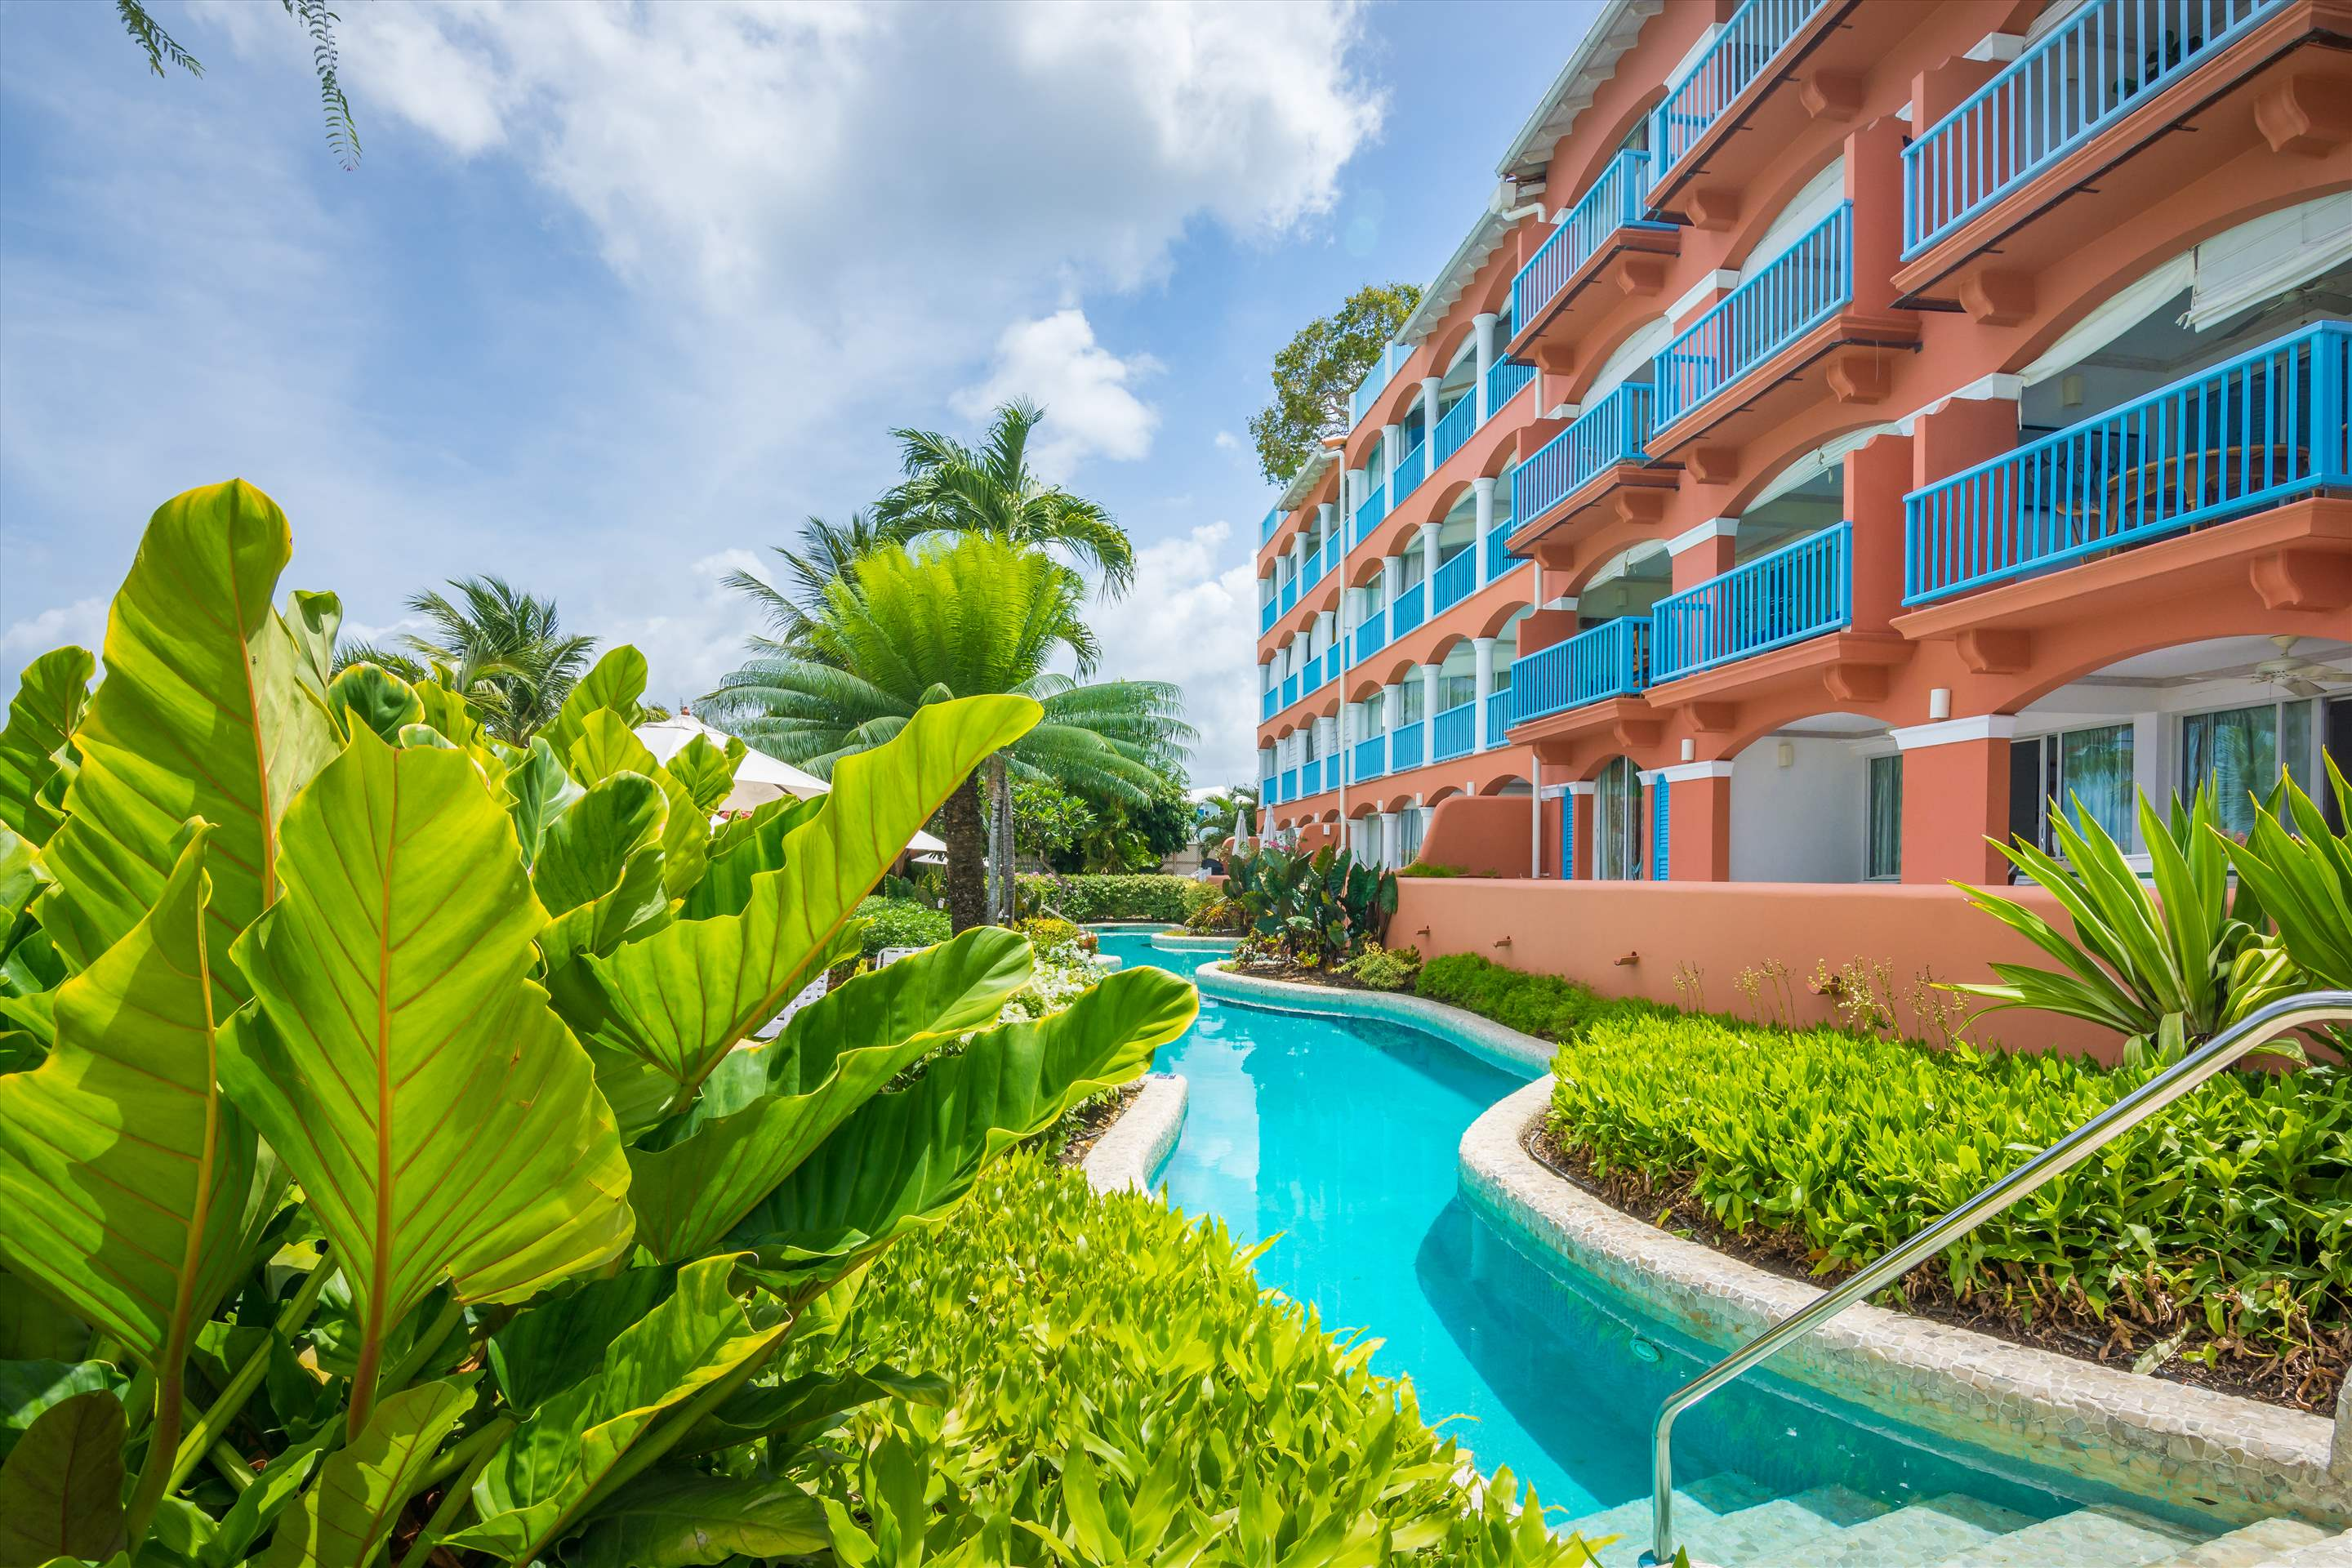 Villas on the Beach 201 , 2 bedroom, 2 bedroom apartment in St. James & West Coast, Barbados Photo #1